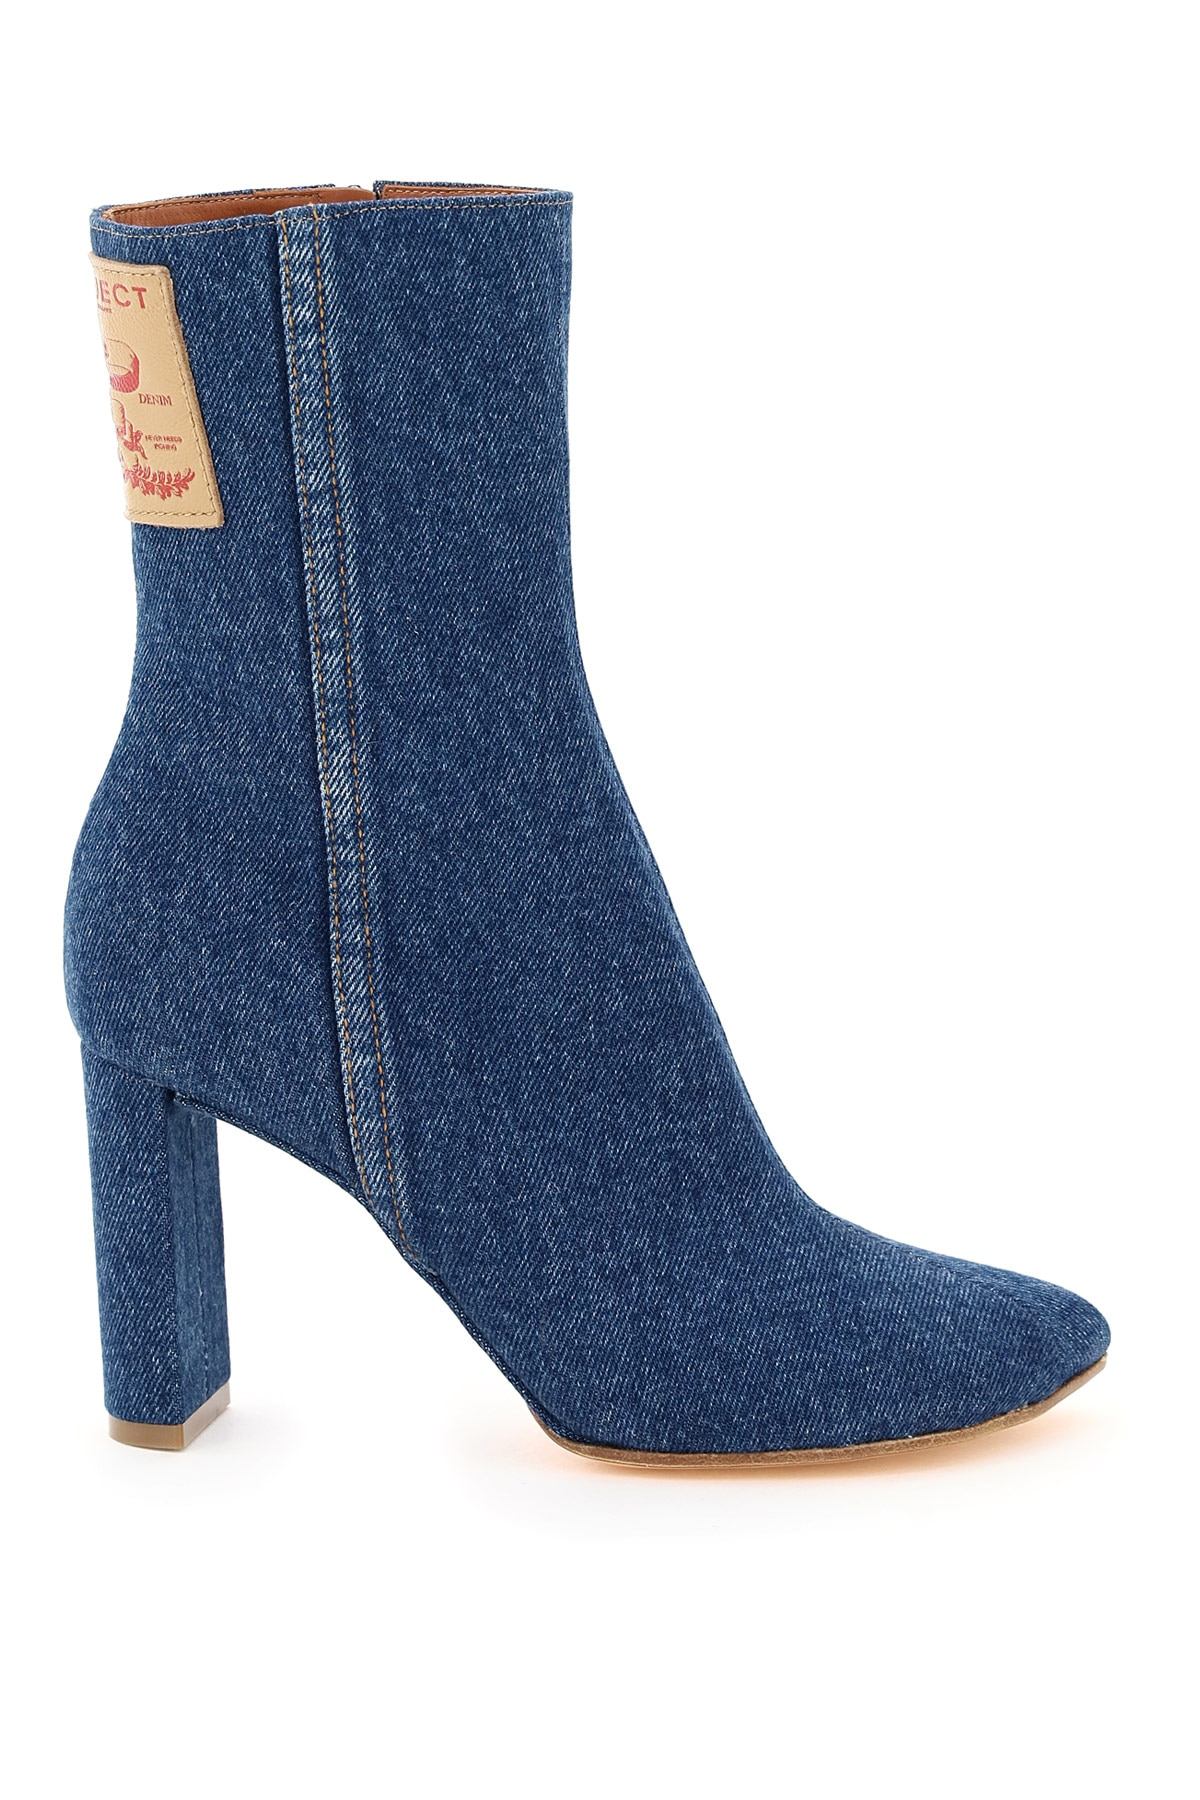 Y Project Pointy Patent Ankle Boots 37 Blue Cotton, Denim